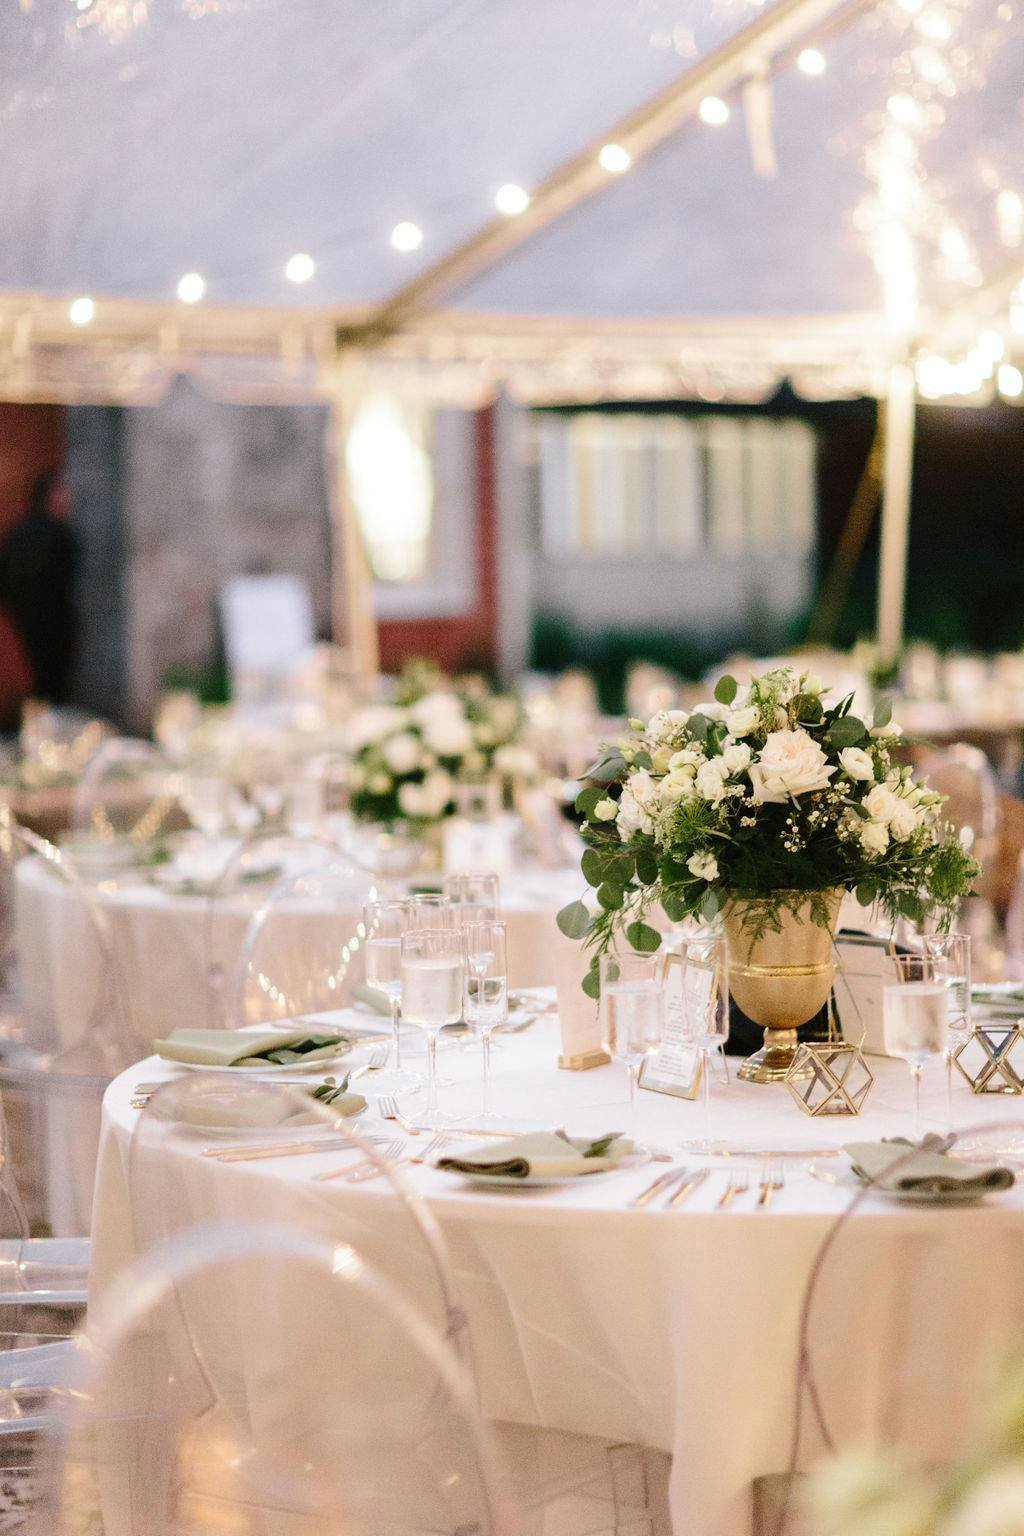 Miami-Wedding-Planner-Gather-and-Bloom-Events-52378466_10218325882484962_4367830497053638656_o